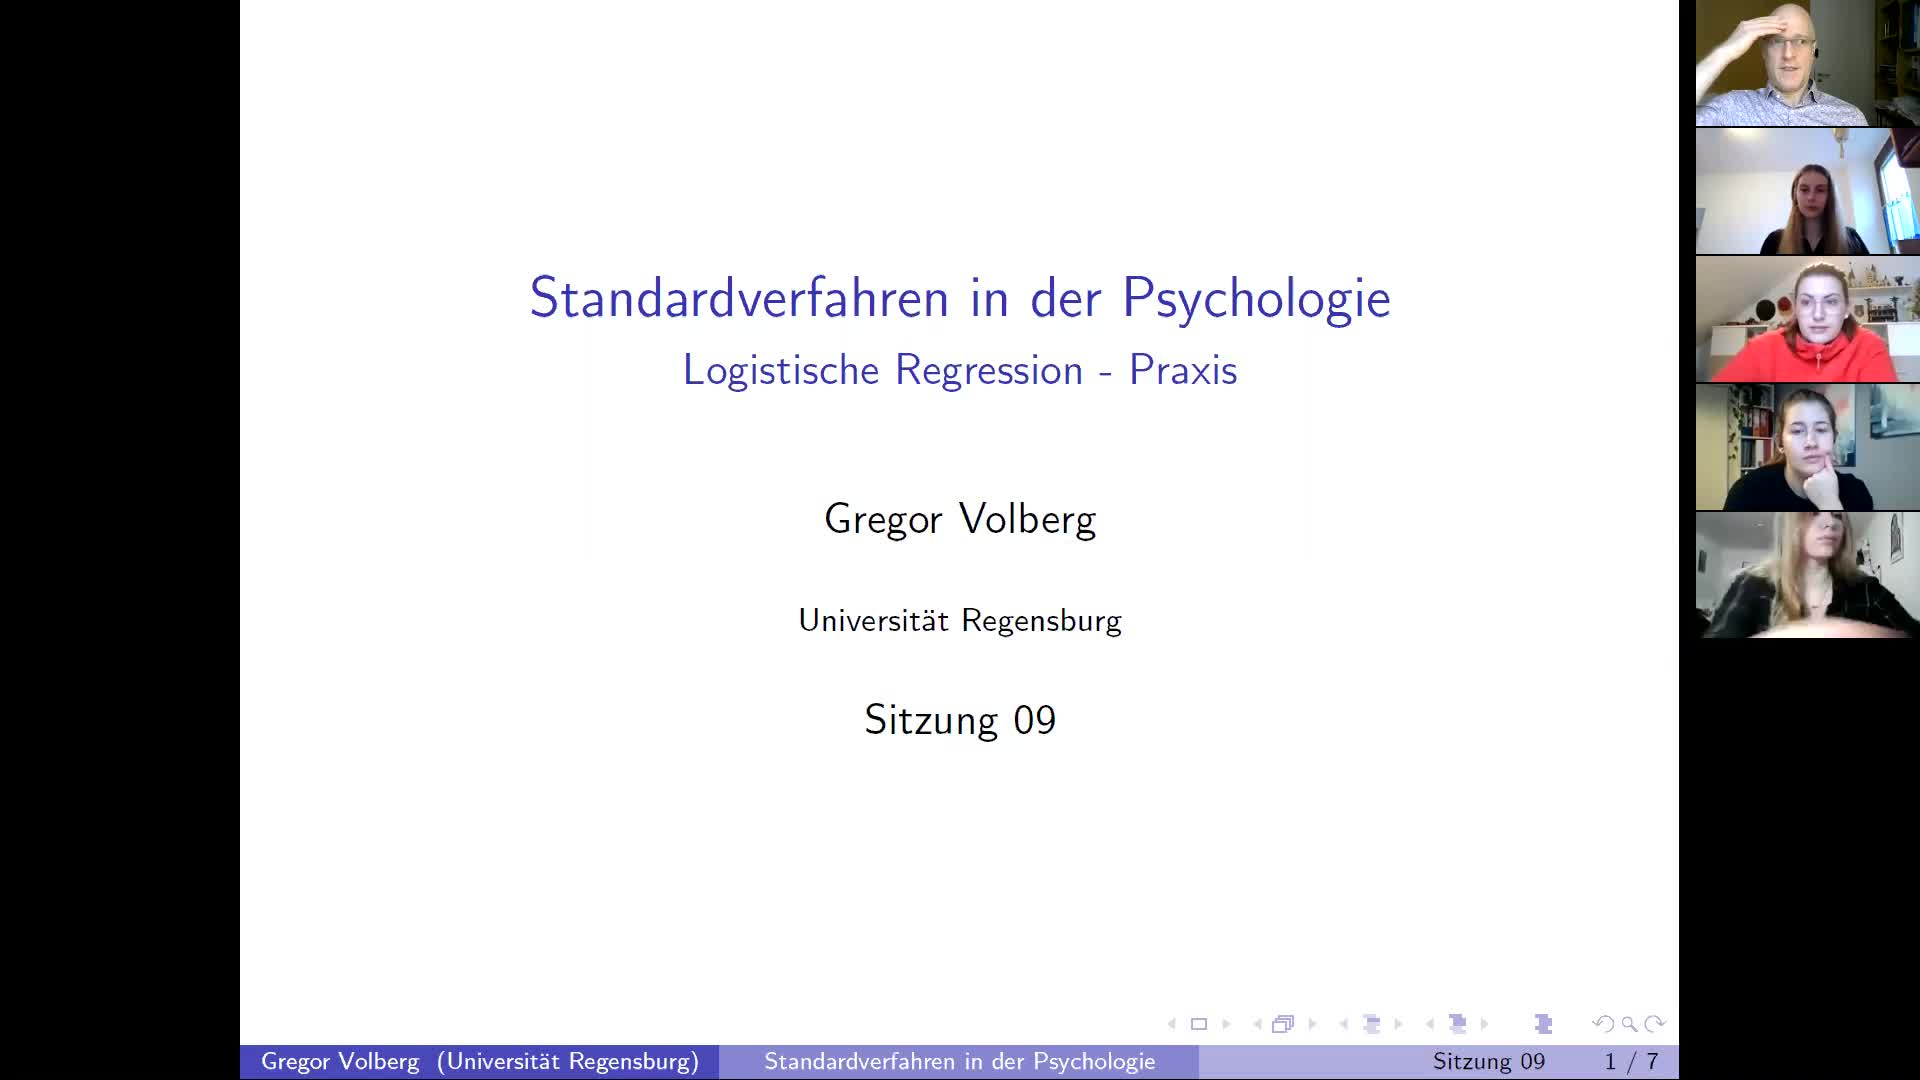 Screencast Logistische Regression - Praxis